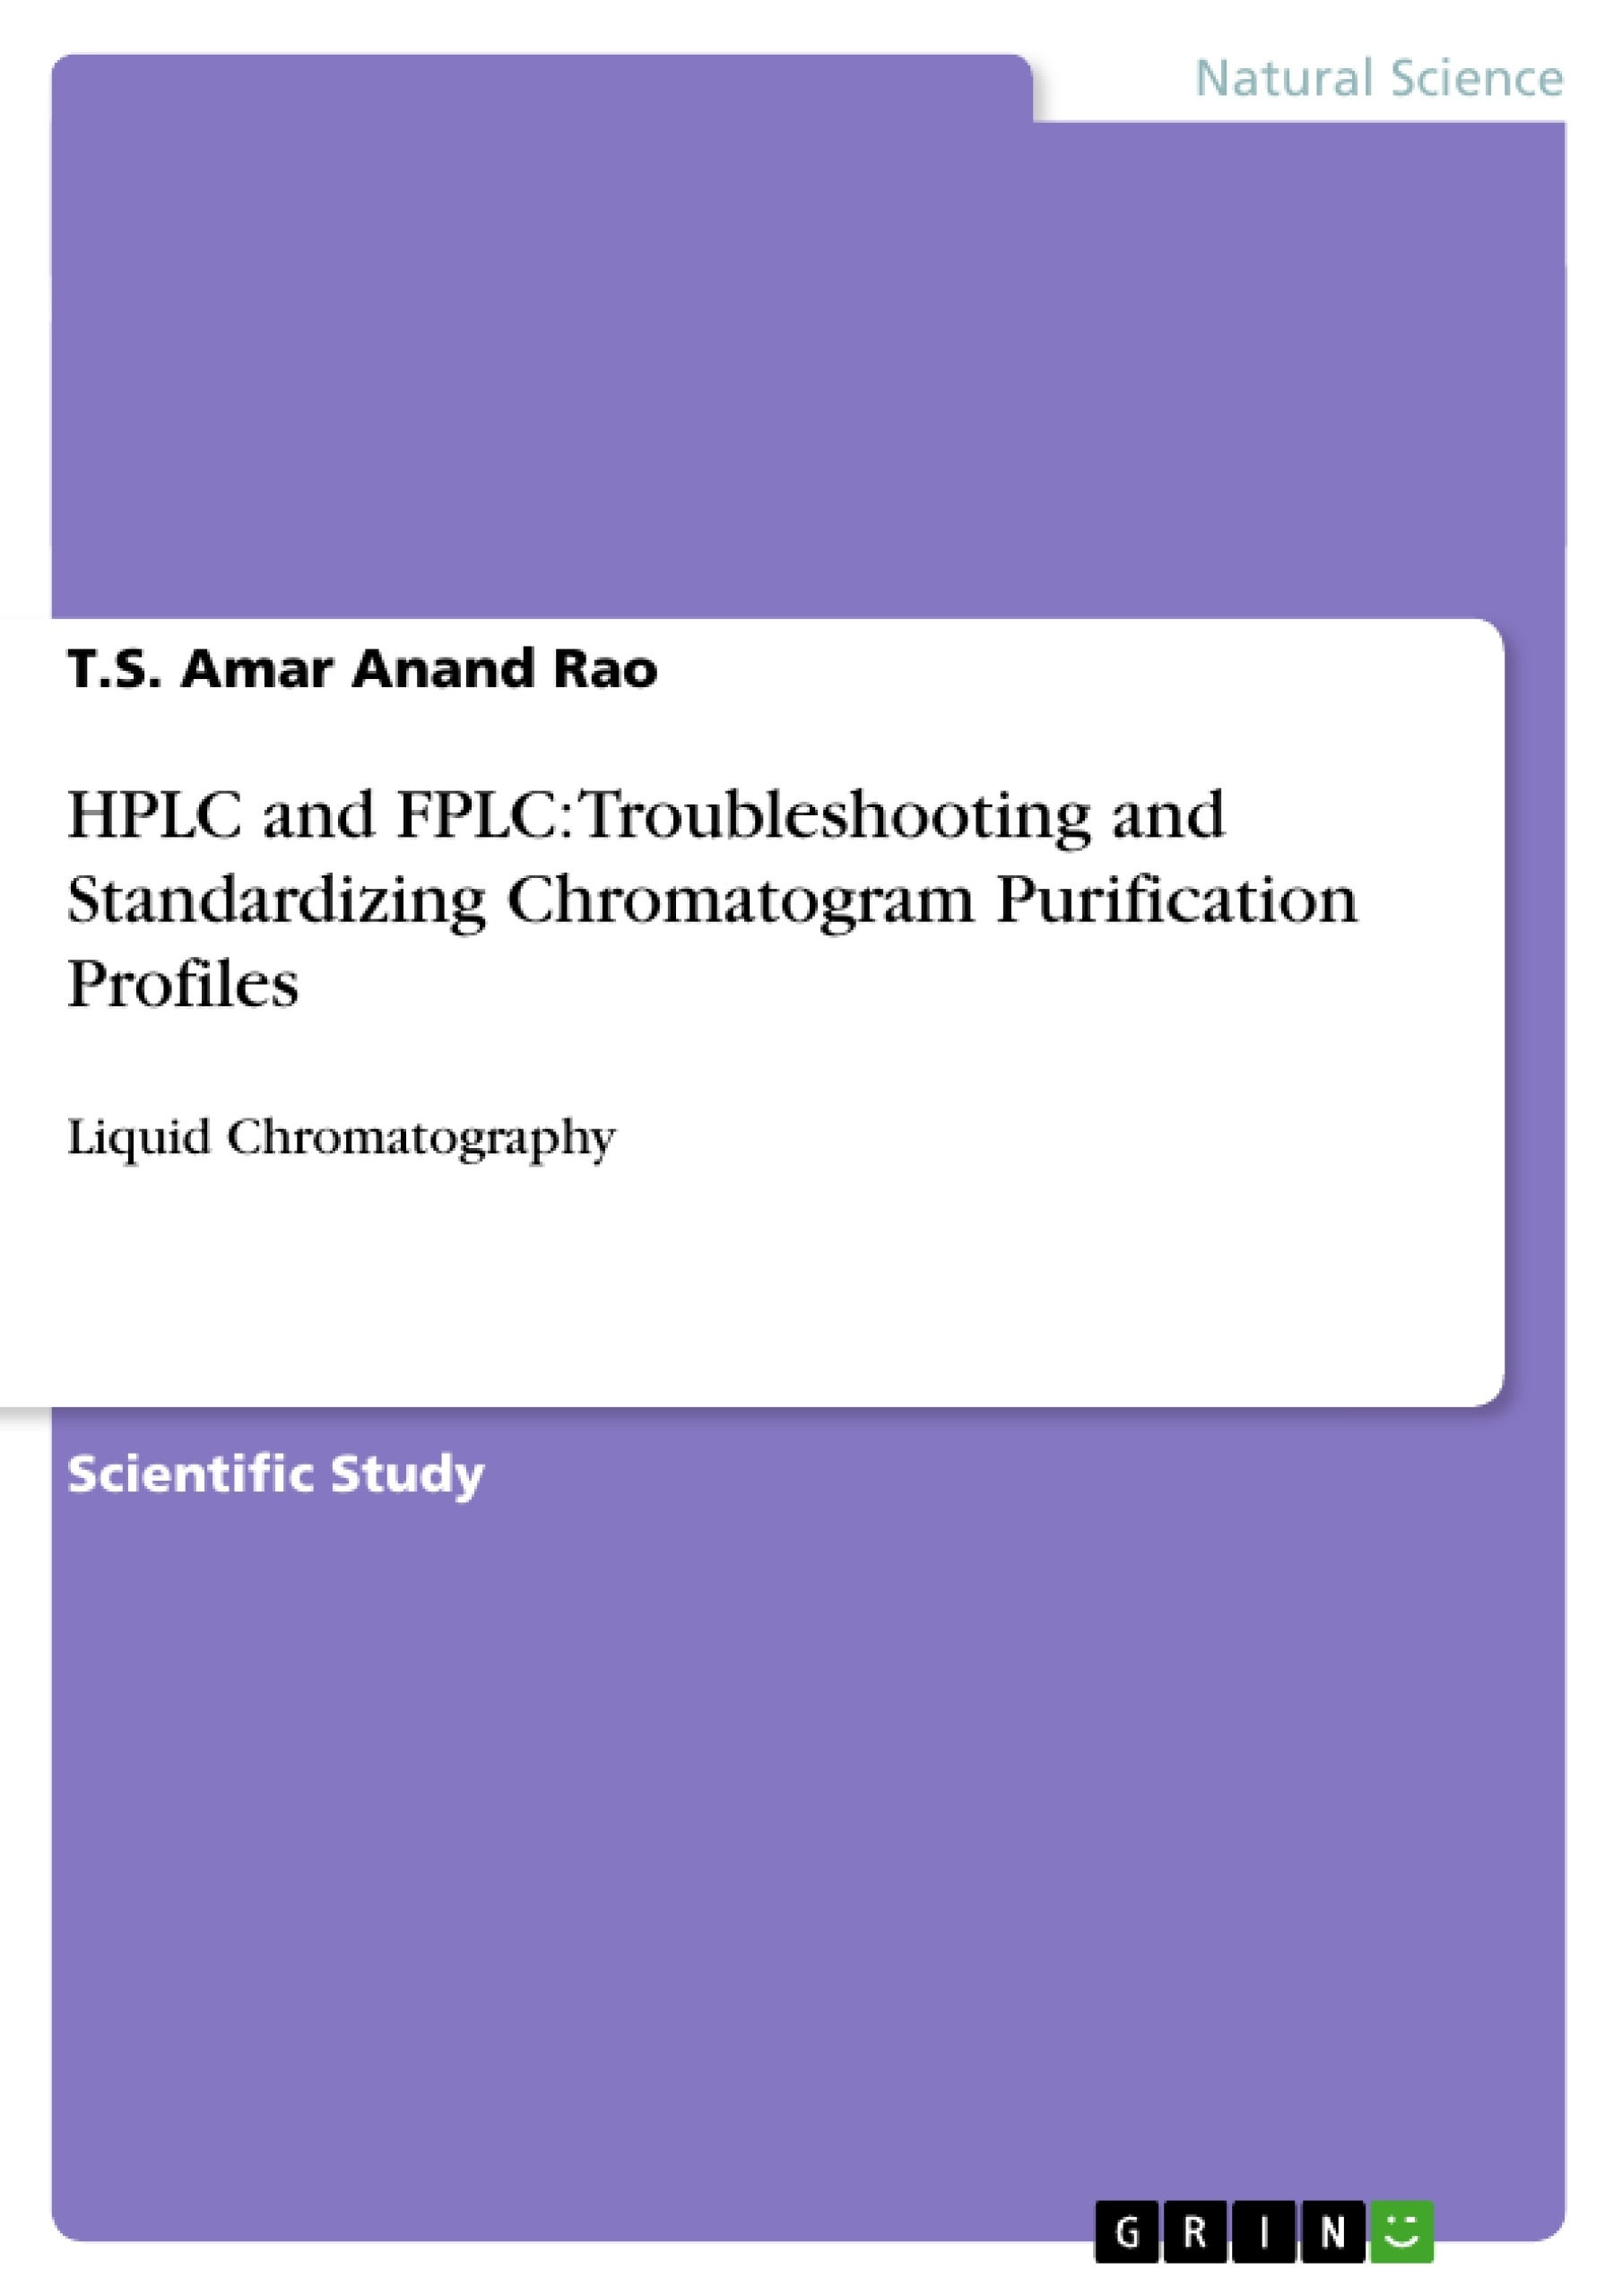 GRIN - HPLC and FPLC: Troubleshooting and Standardizing Chromatogram  Purification Profiles